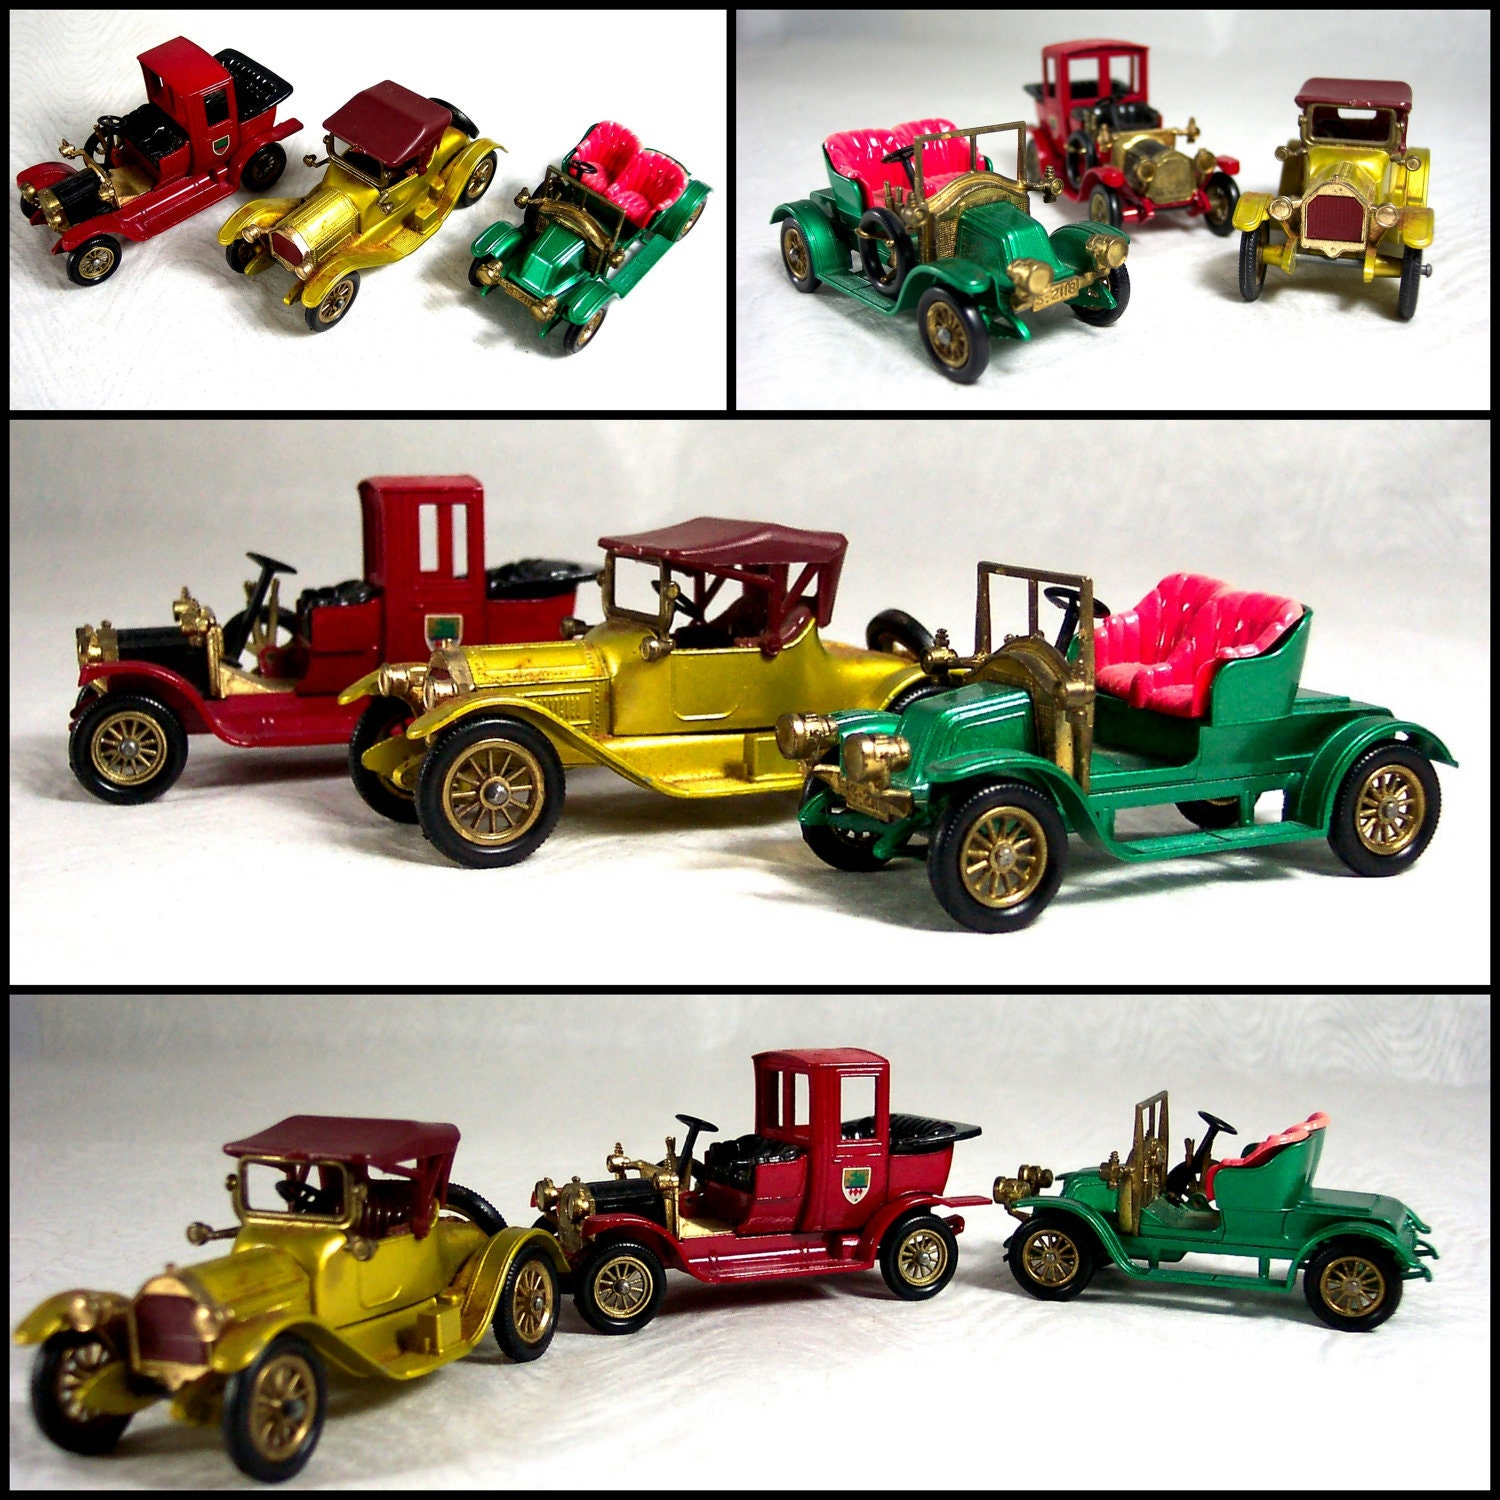 Toy Diecast Matchbox Cars Vintage Collection